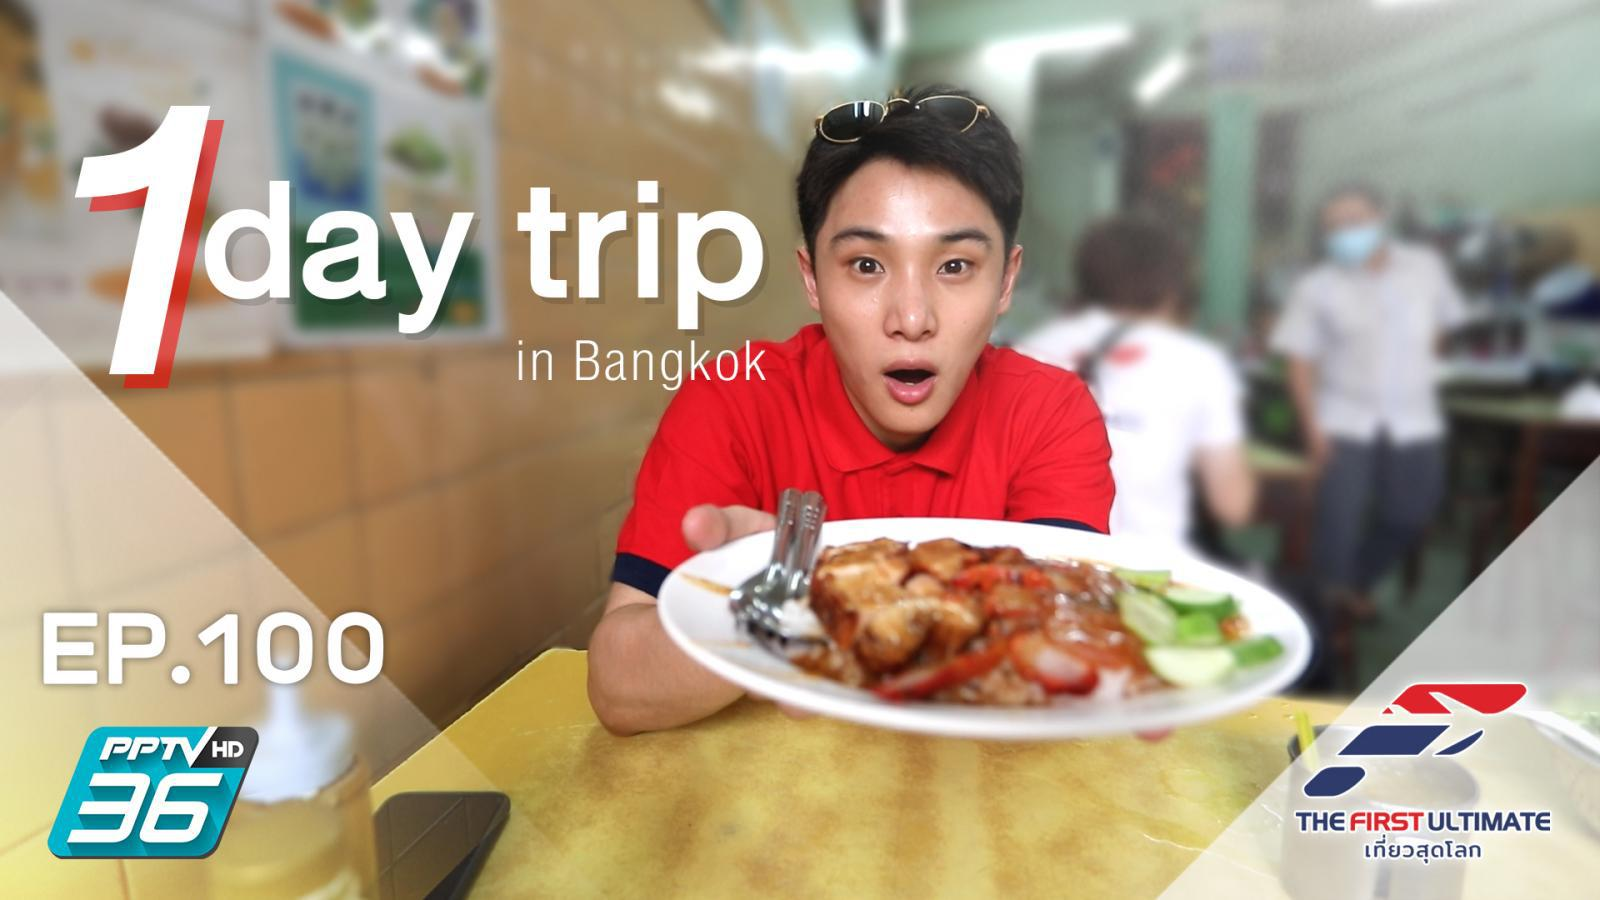 1 Day trip in Bangkok, Thailand ตอนที่ 1 : Joonior